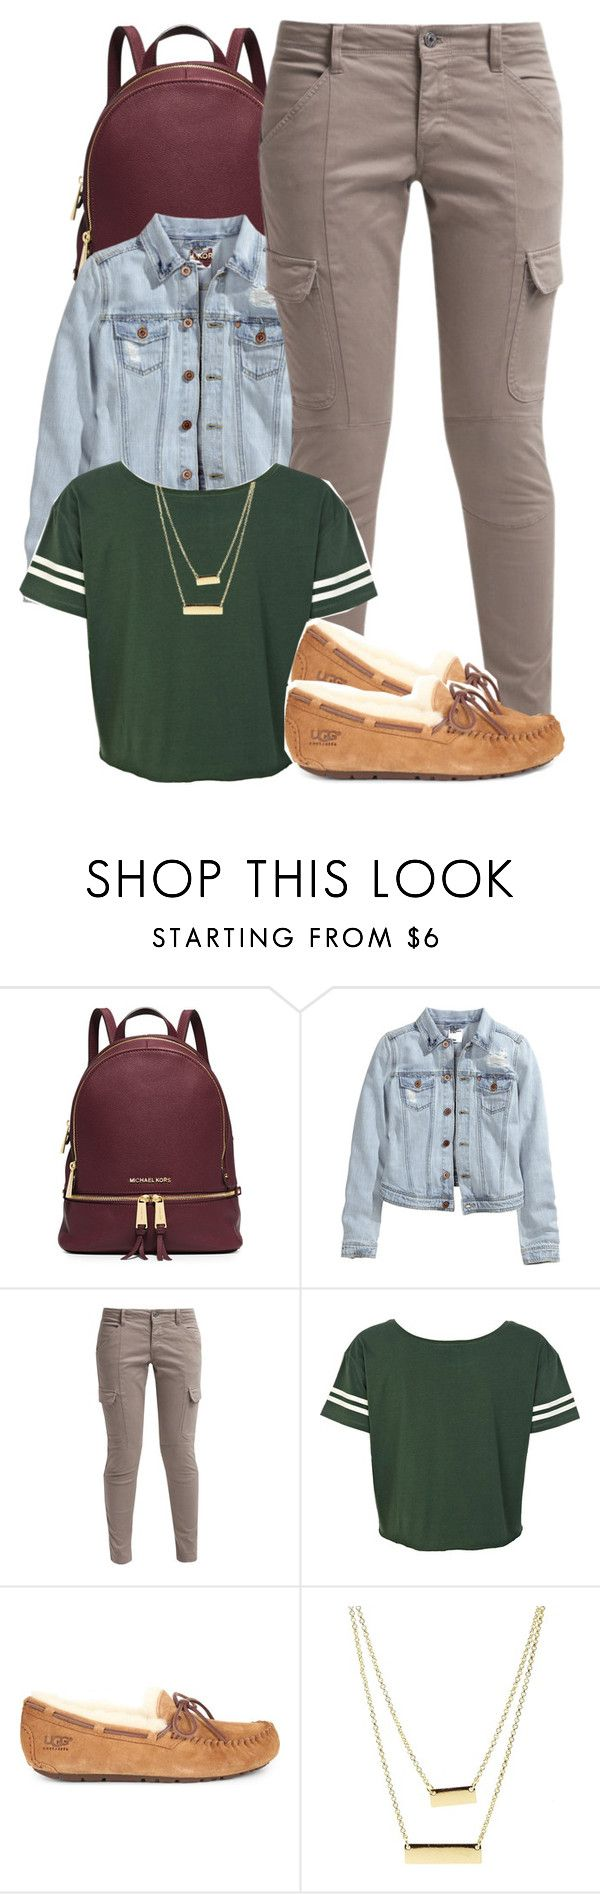 """"""""""" by trinsowavy ❤ liked on Polyvore featuring MICHAEL Michael Kors, H&M, School Rag, River Island, UGG Australia and Charlotte Russe"""